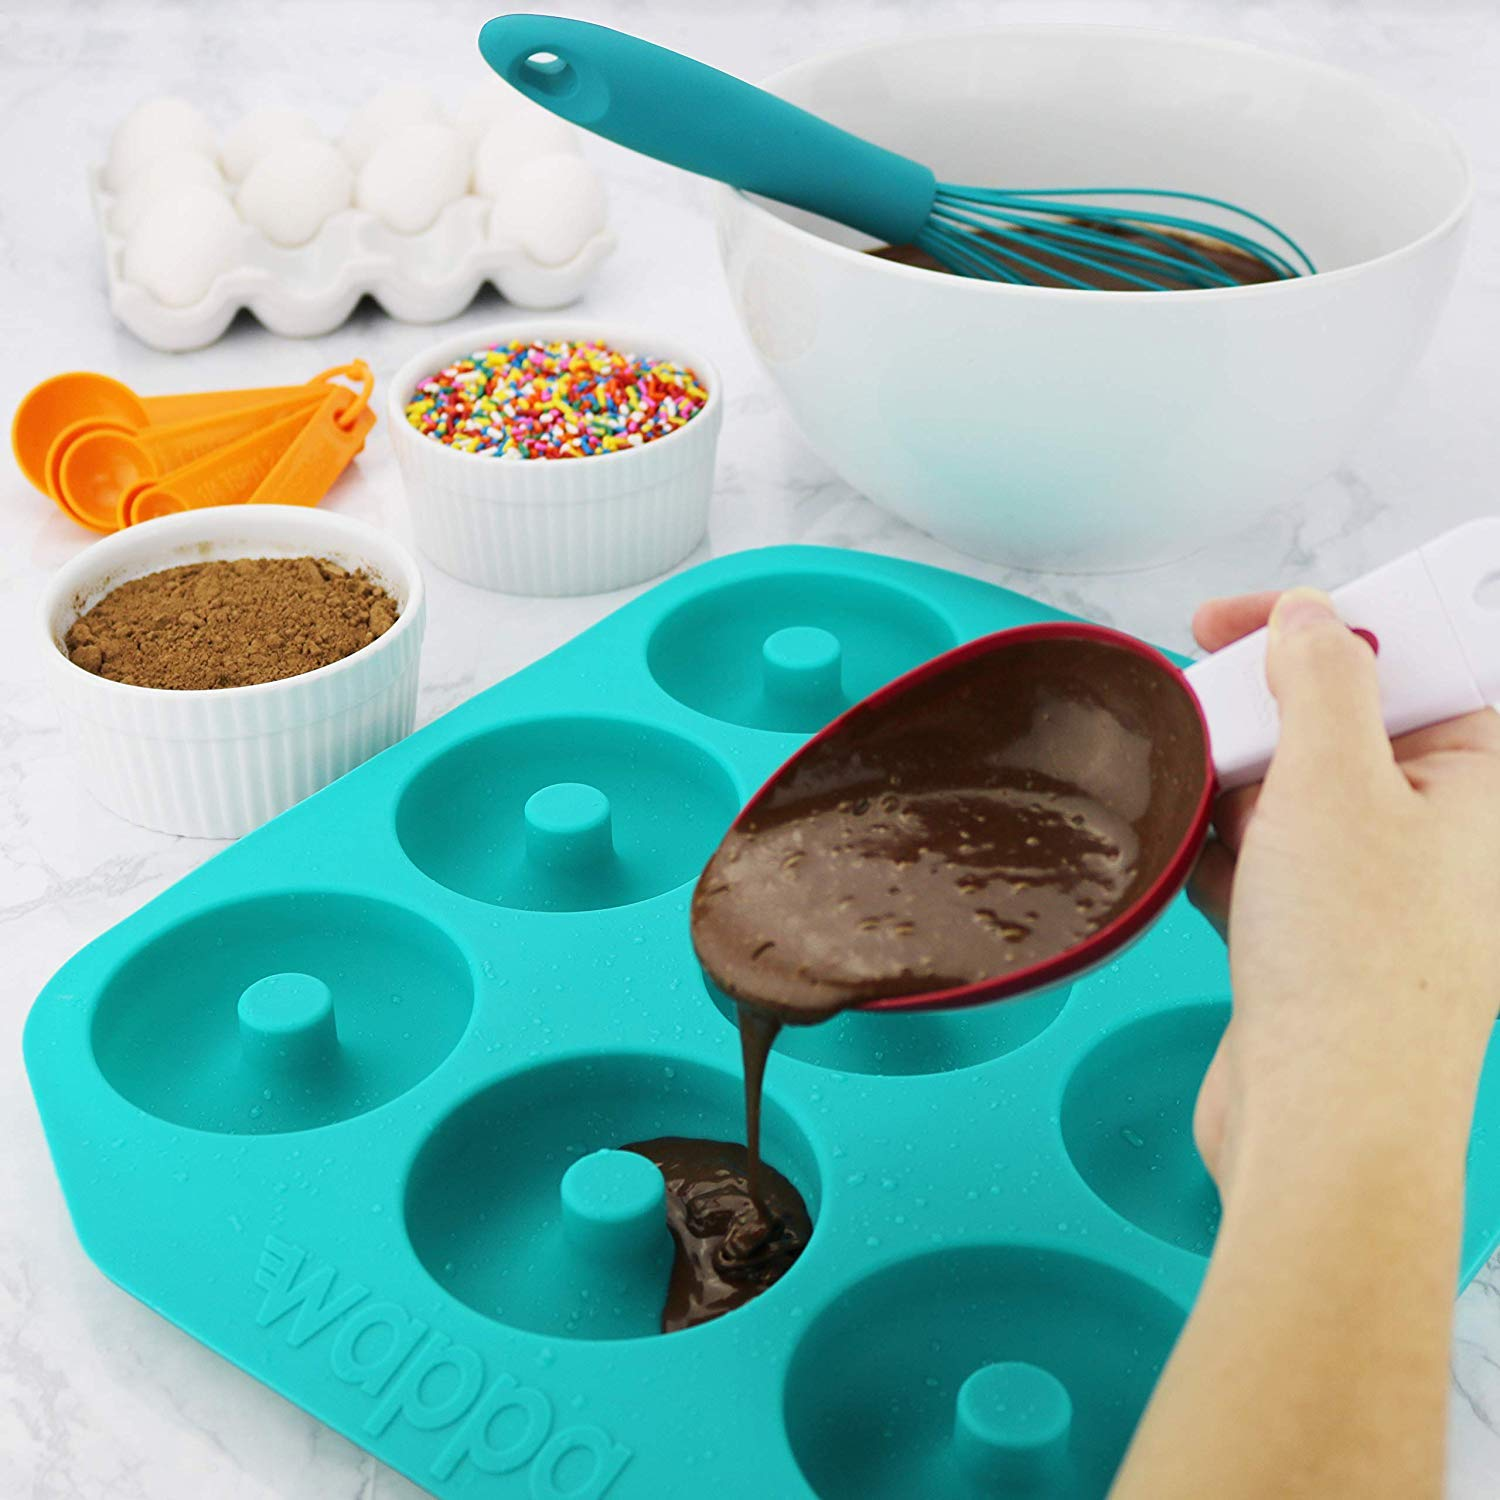 Donut Pan - LARGE Silicone Mold For Baking Full Size Doughnuts And Bagels